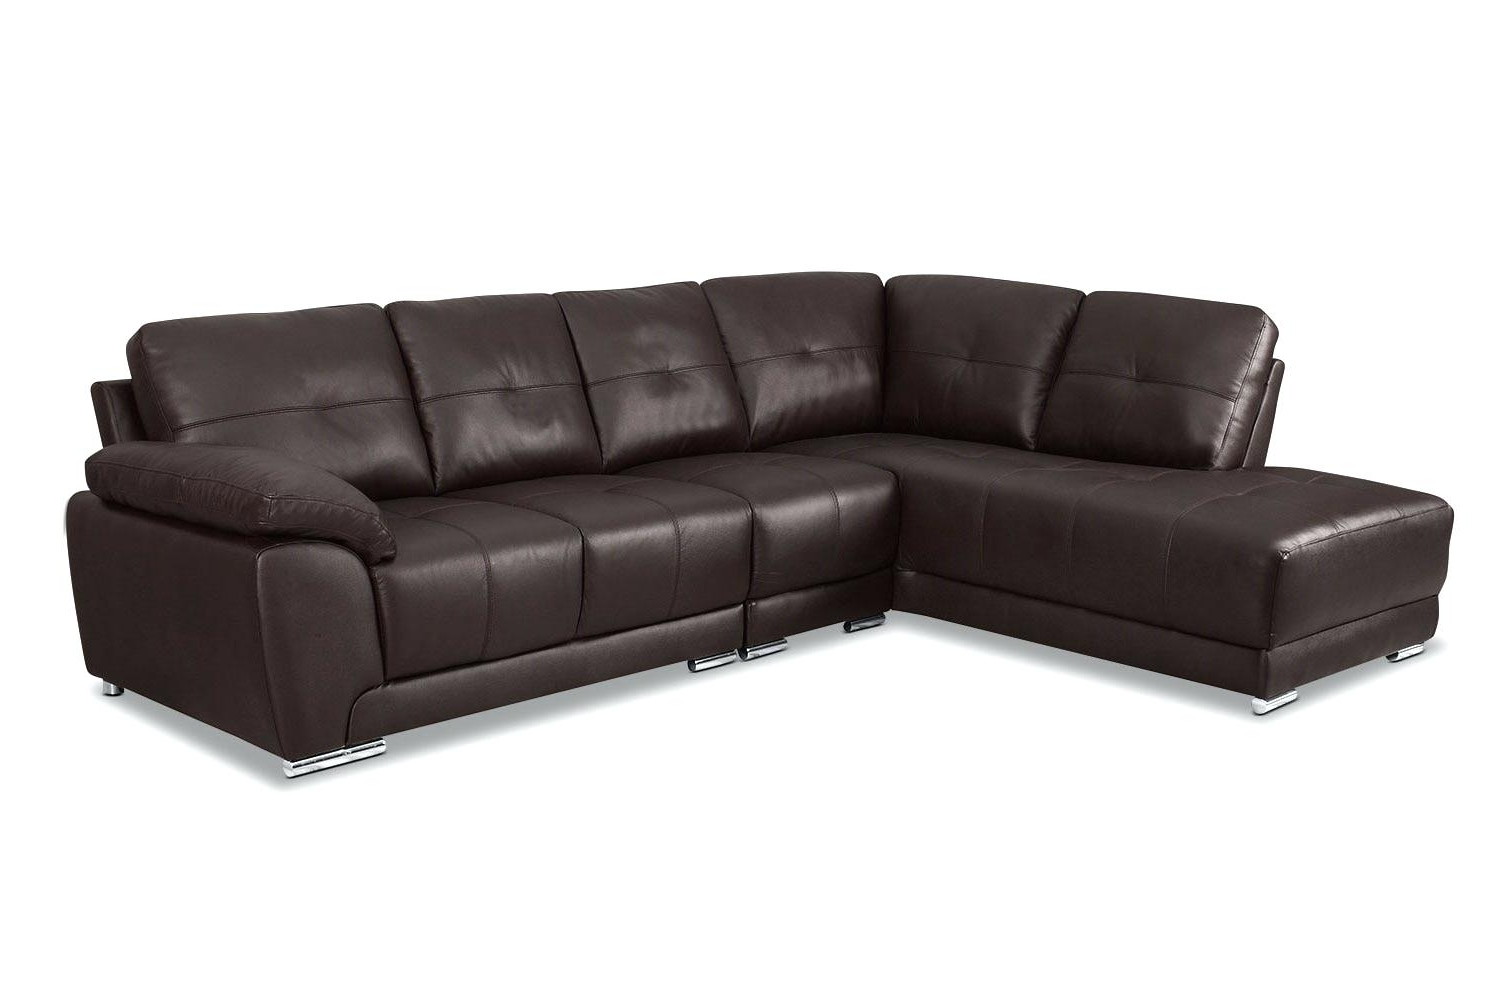 Famous Couches On Clearance Sacheap Sas Es Sofas Free Shipping Leather Regarding Closeout Sofas (View 6 of 15)